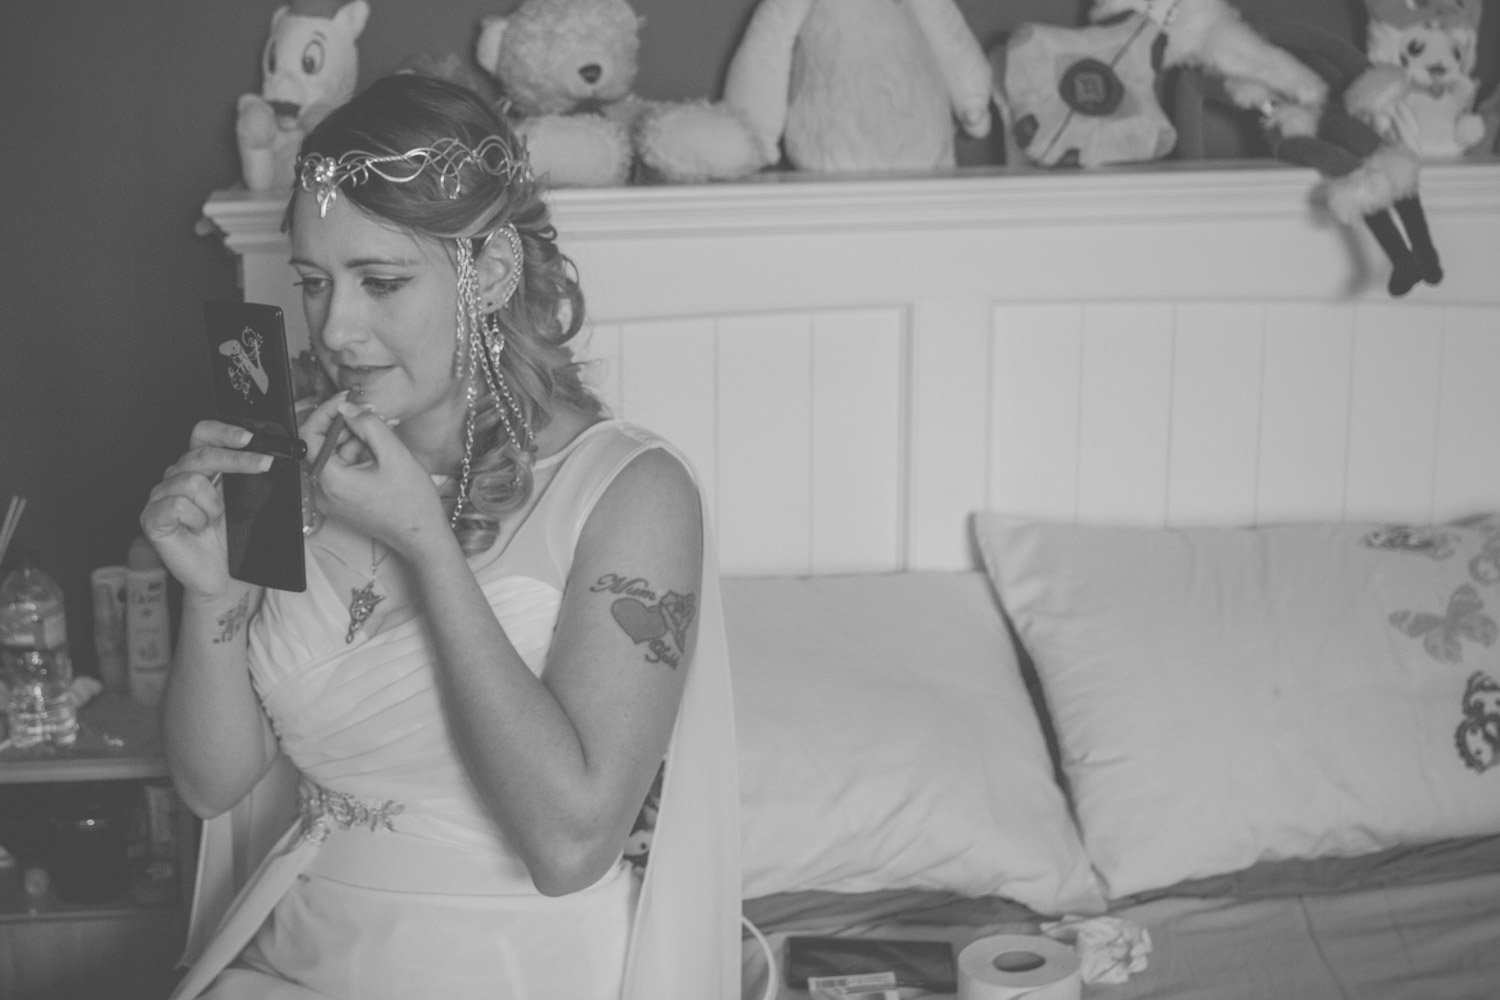 holdsworth-house-hotel-halifax-keighley-wedding-photography-chicca-10.jpg